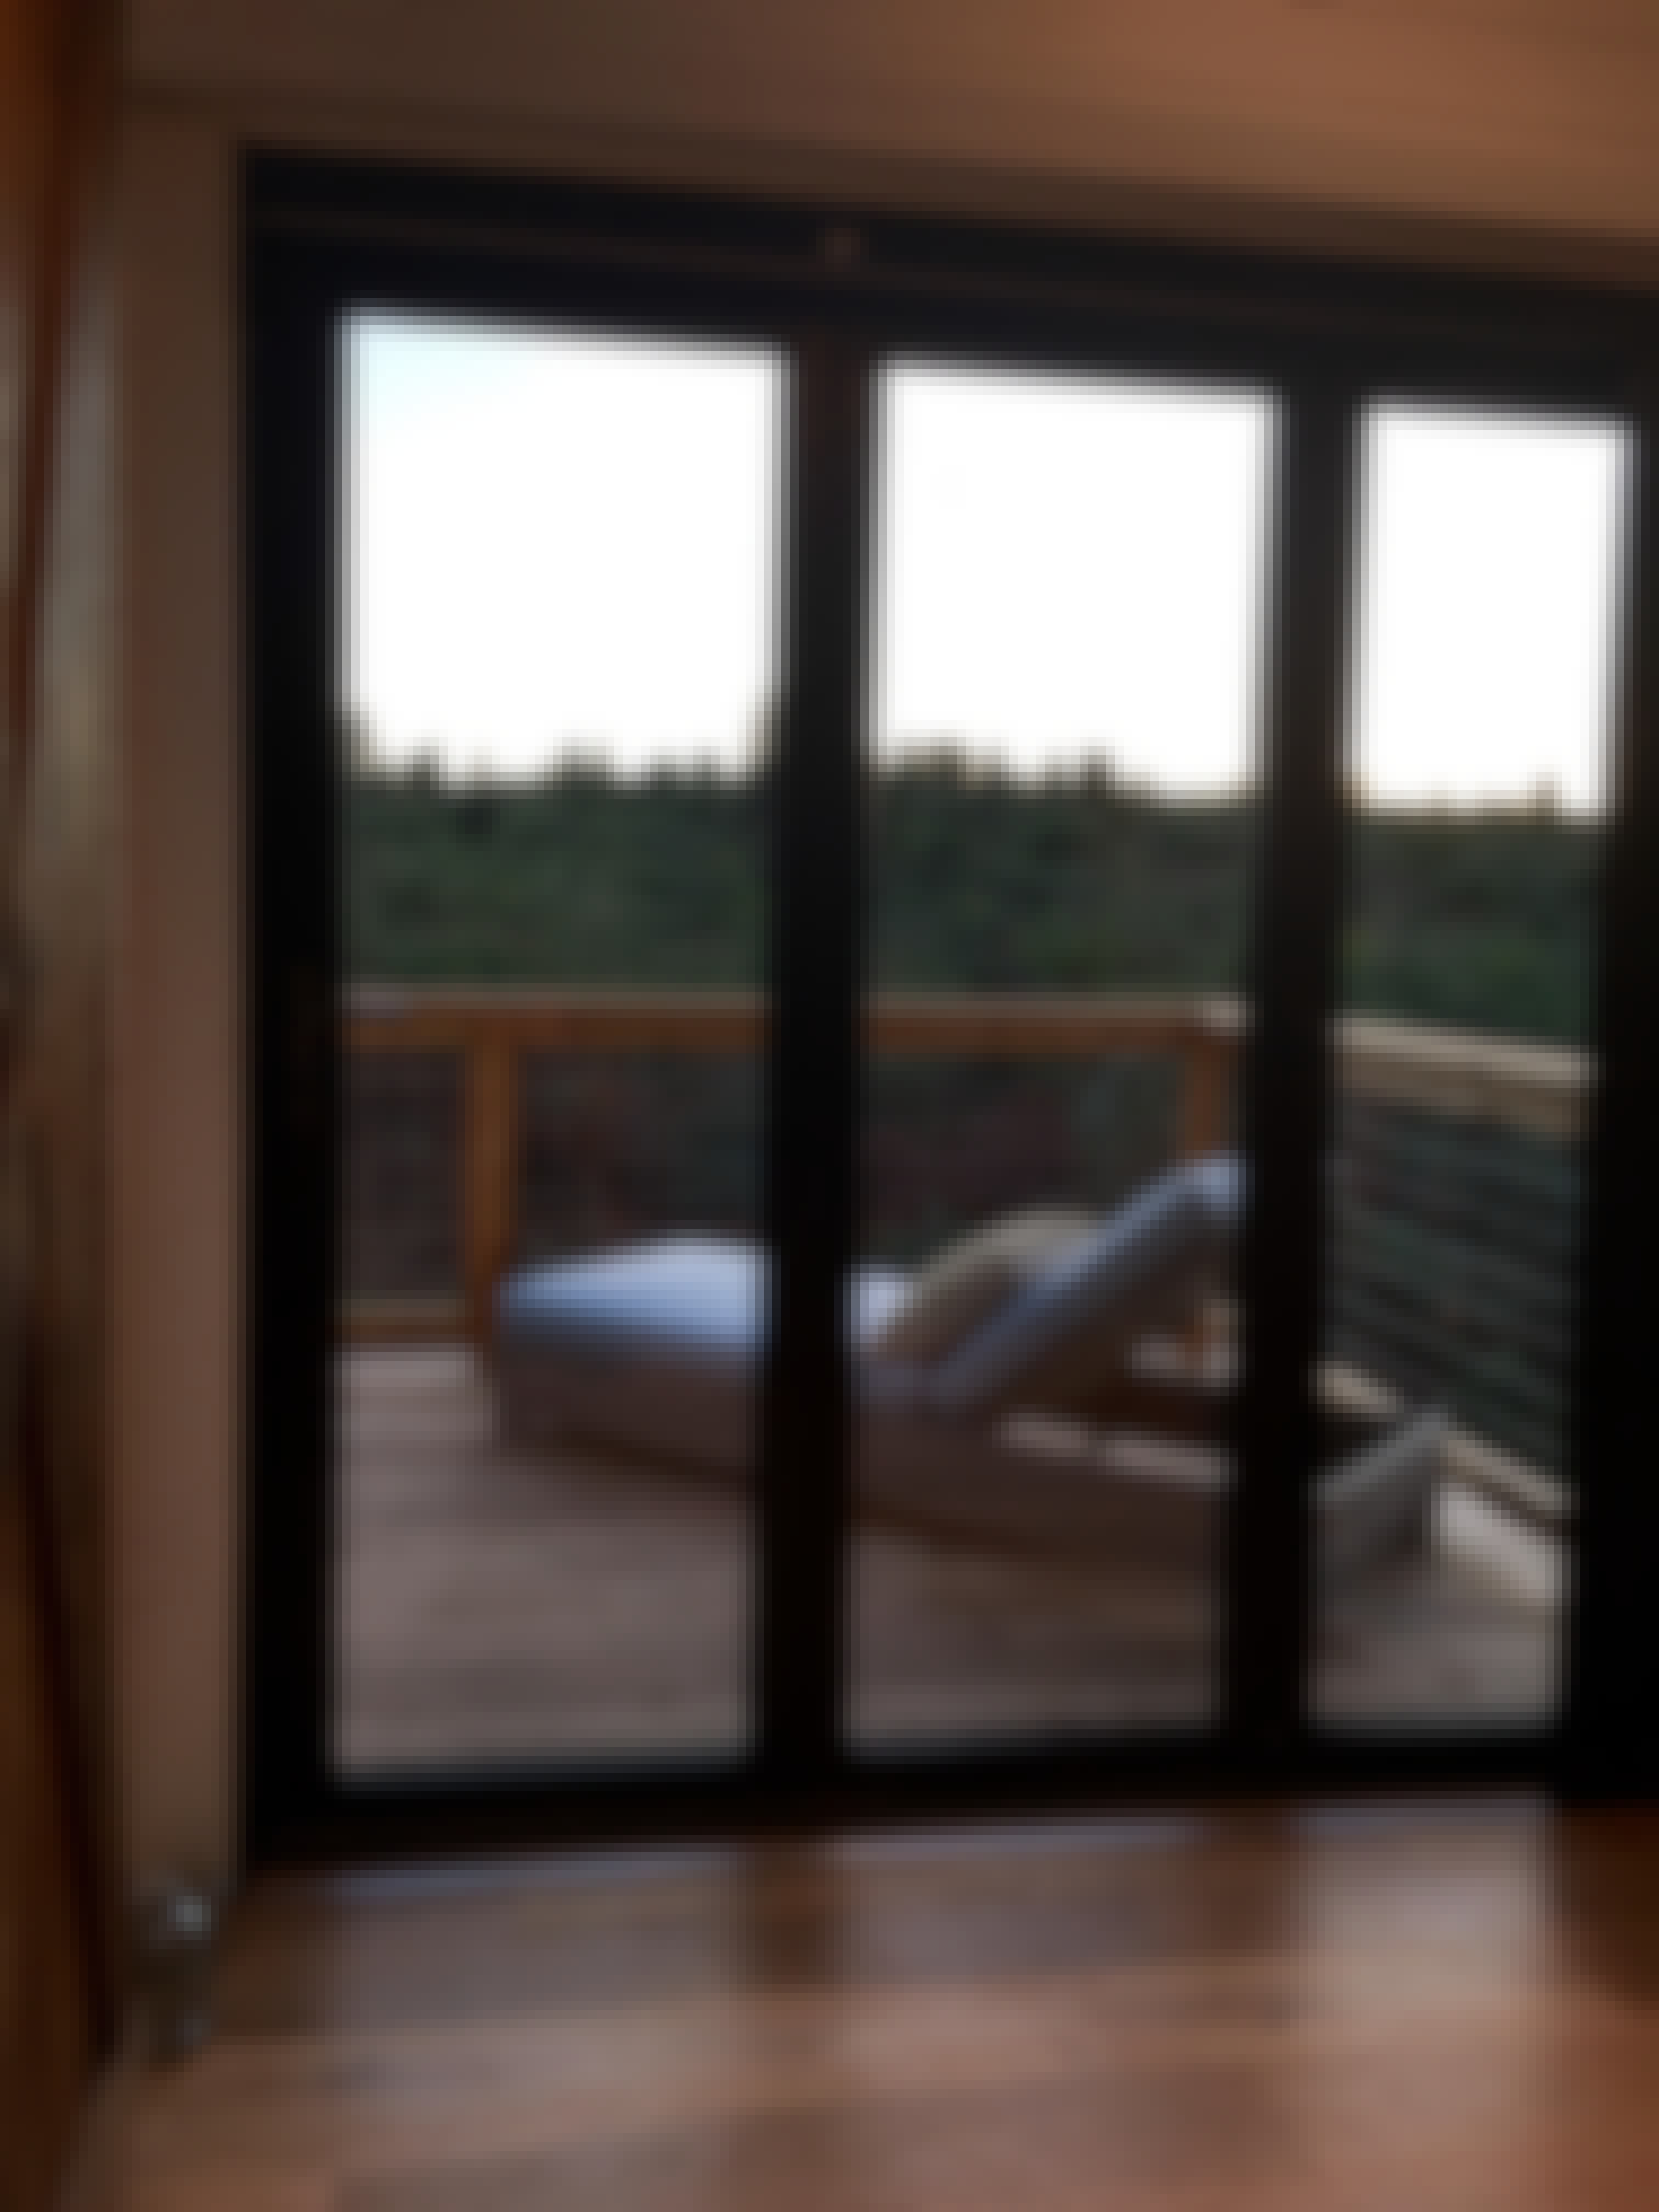 The master bedroom inside Shawn and Shelly's tiny home in Maui